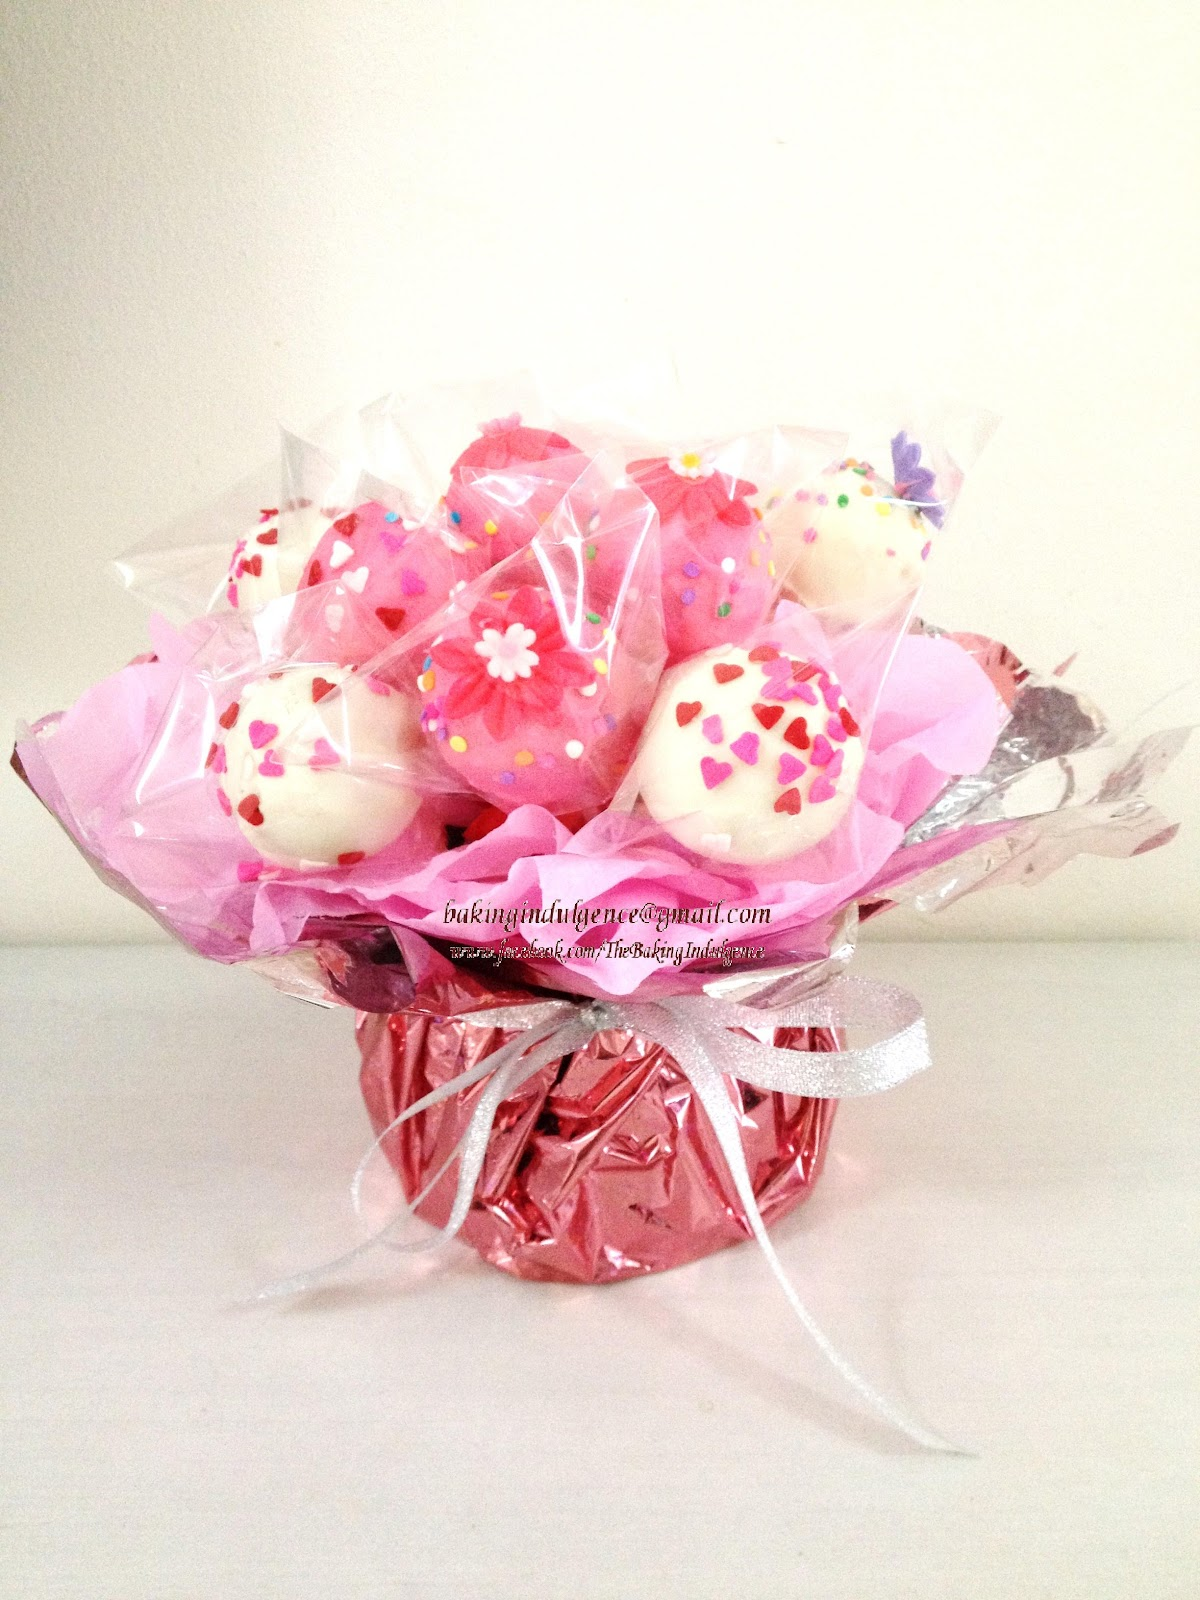 Baking Indulgence Cake Pop Bouquet For Your Love Ones